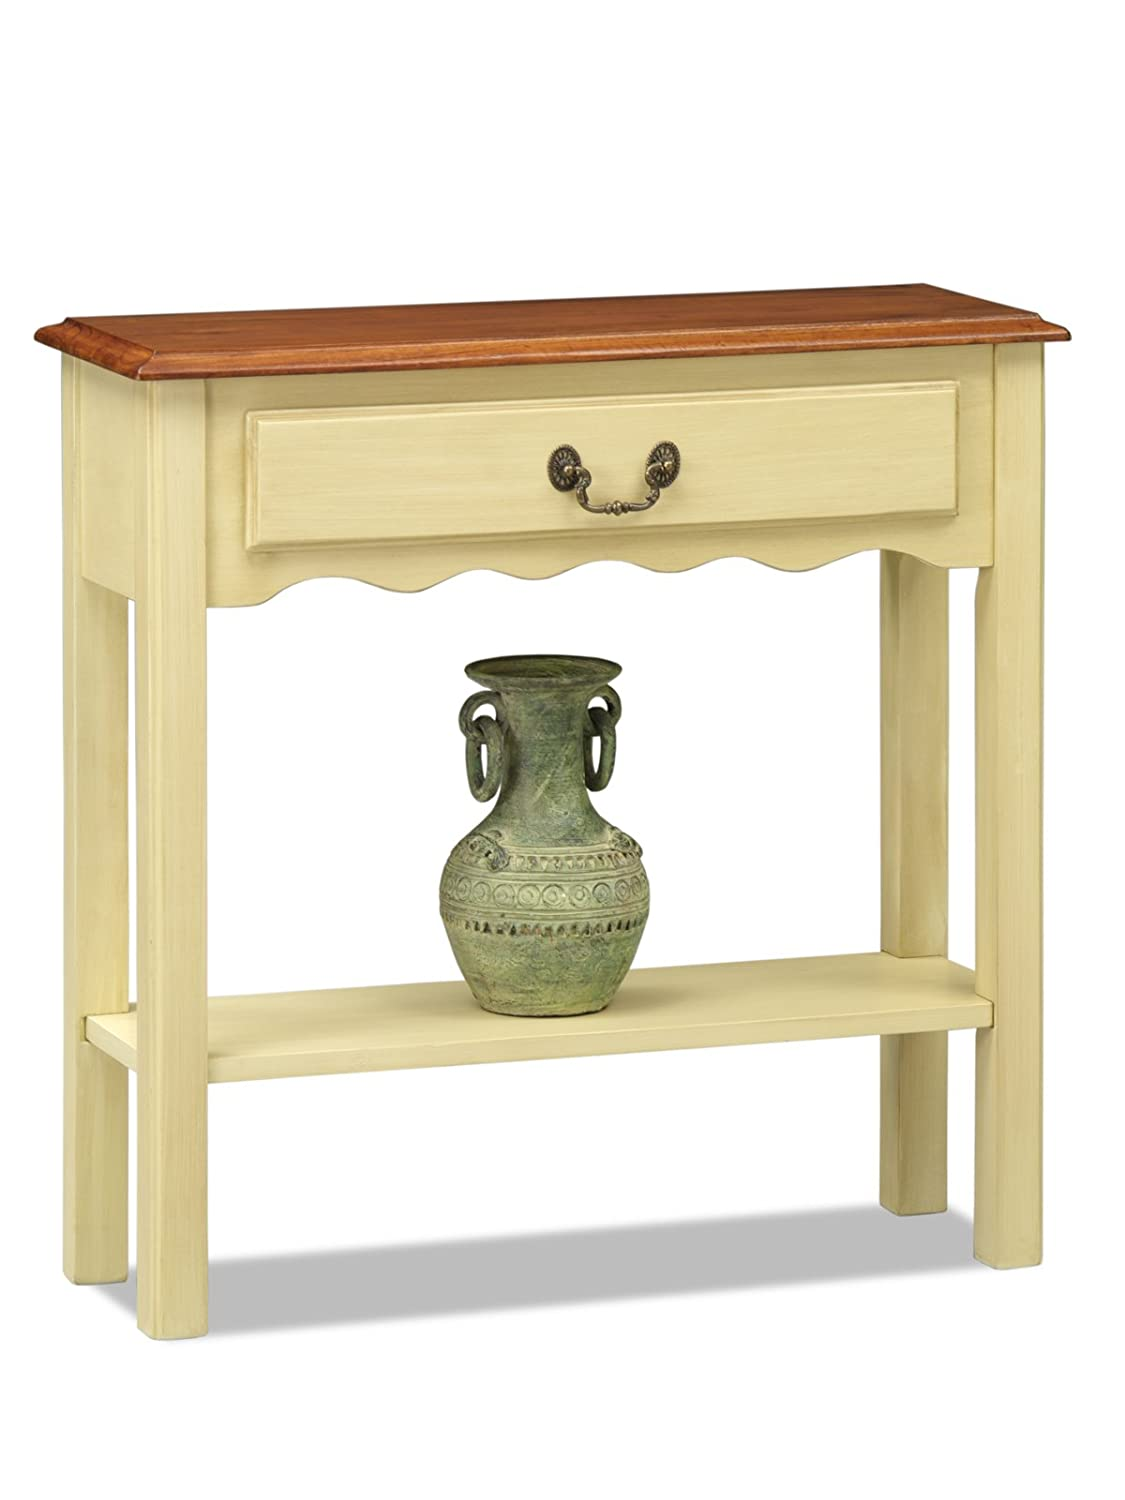 Leick Wave Console Table, Ivory Finish 9021-IV